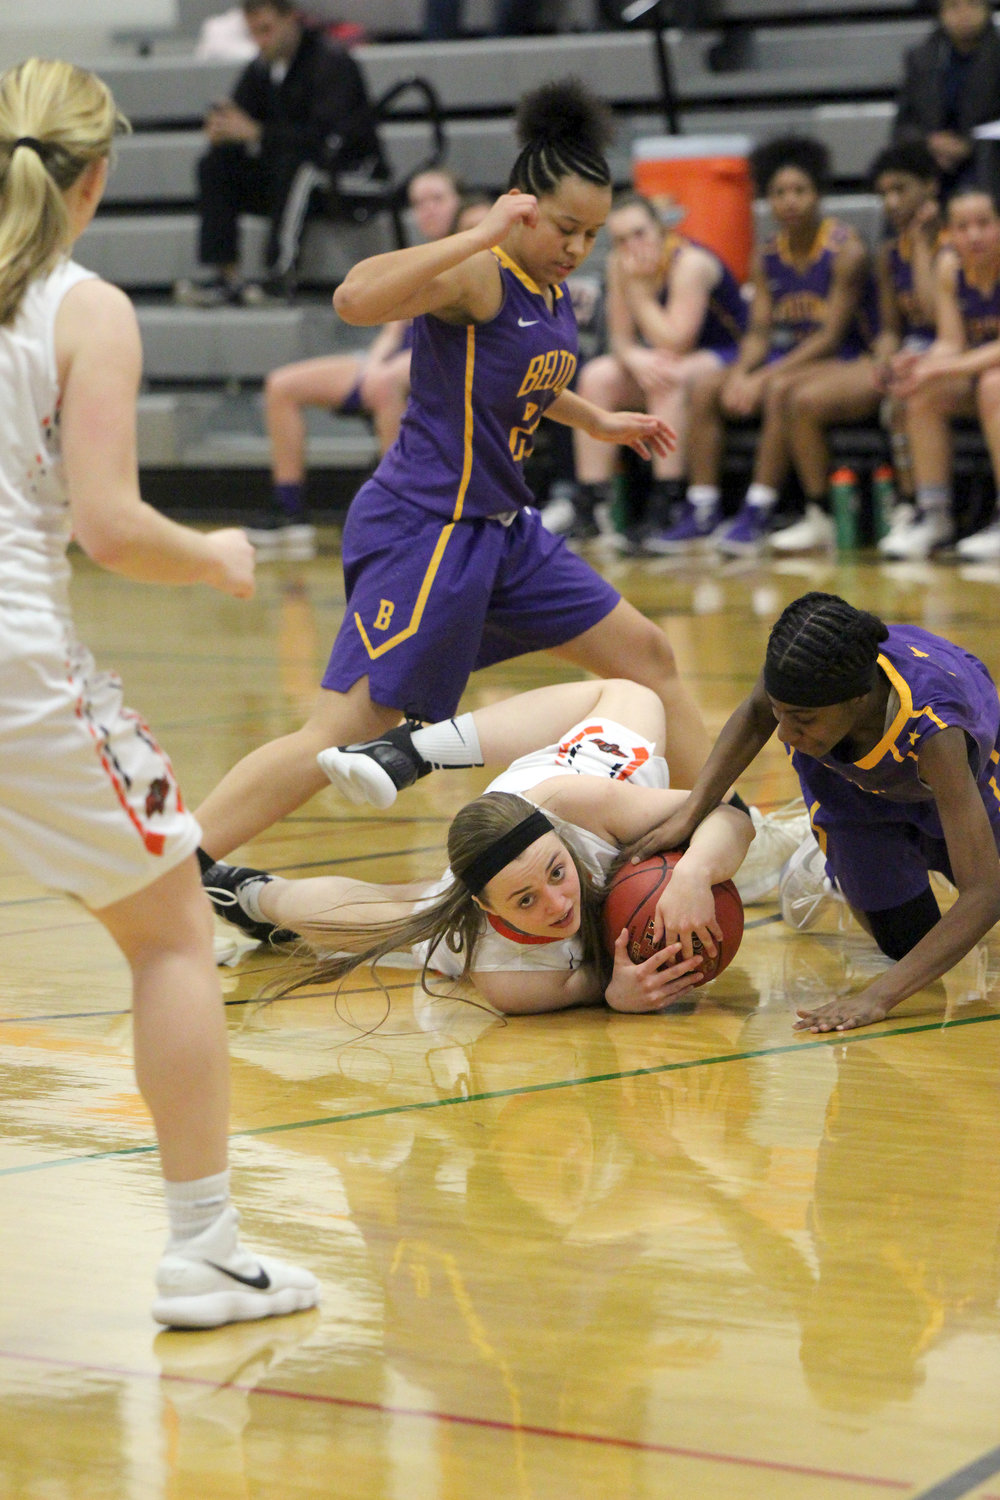 CODY THORN/Citizen photo Platte County junior Trista Amos, middle, looks up at a referee who called a jump ball situation after she battled Belton's Ta'Kyla Canady for the loose ball during a game Monday, Feb. 5, at Platte County High School.